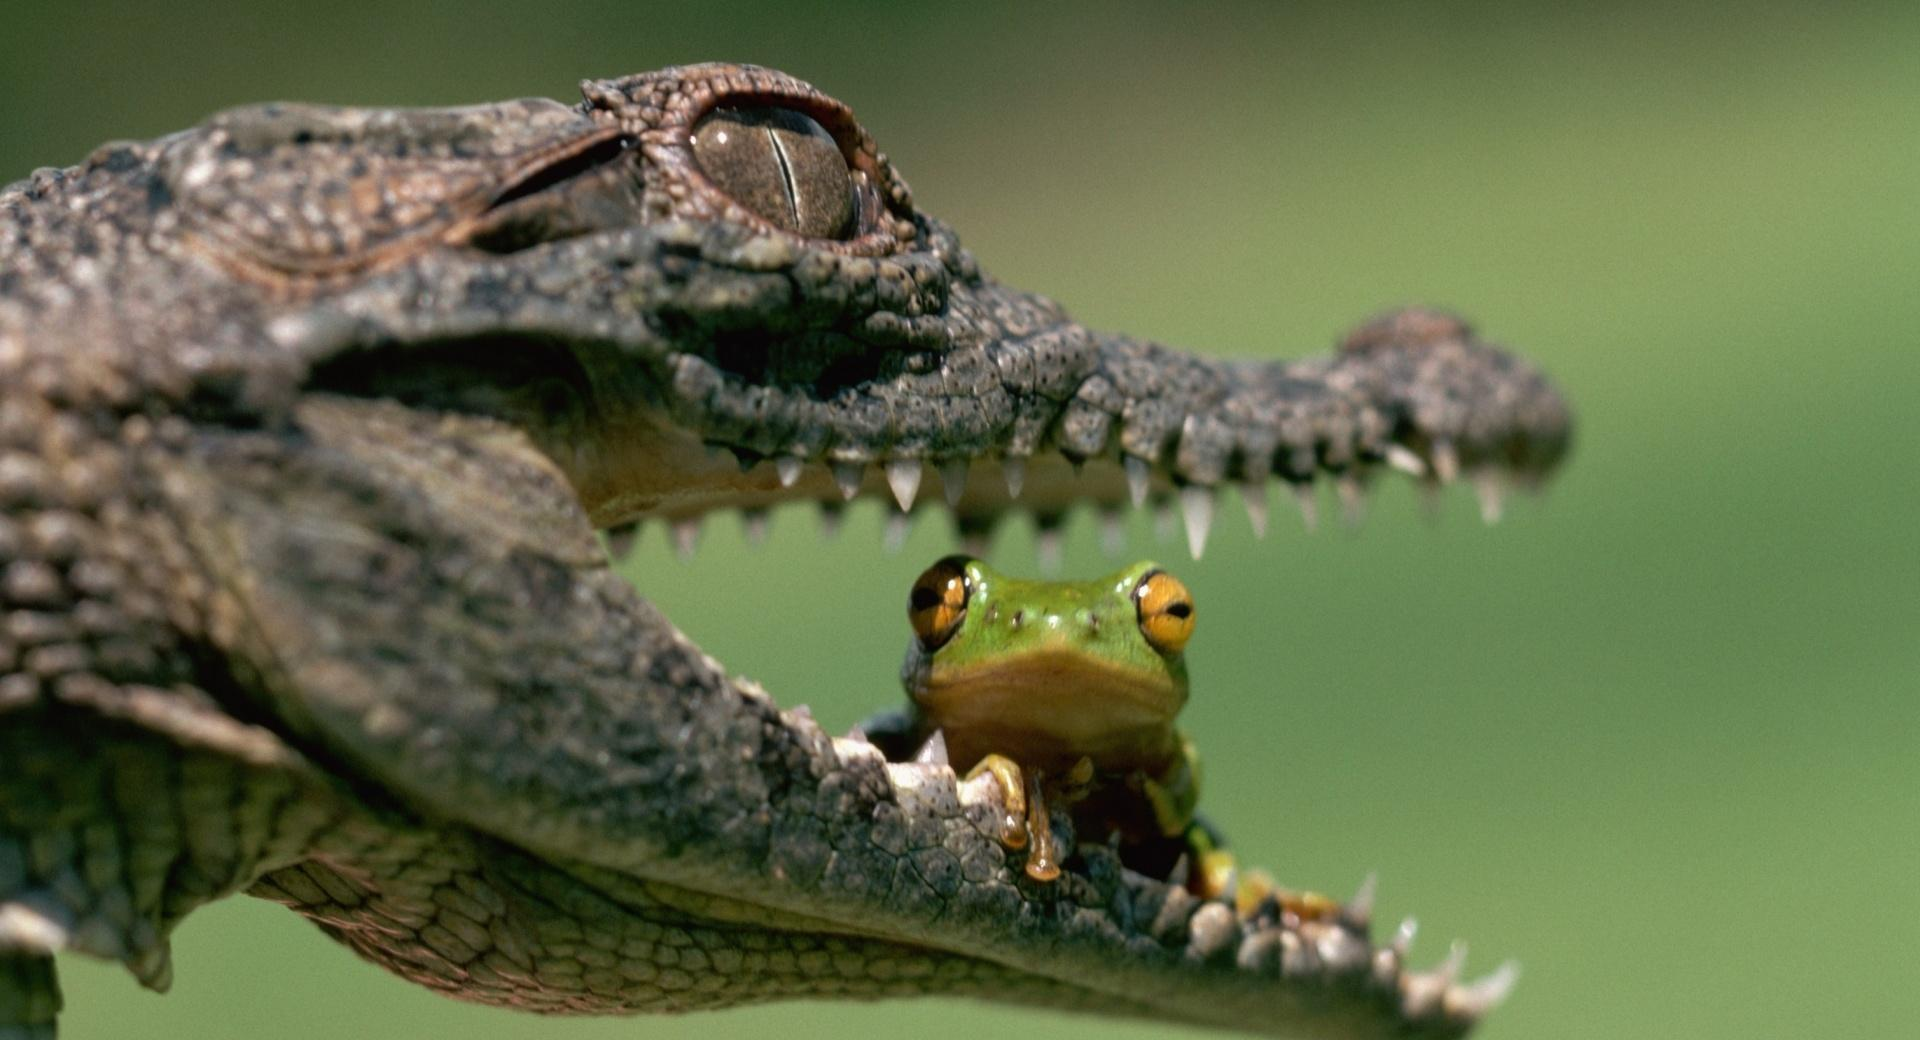 Crocodile Eating Frog at 640 x 1136 iPhone 5 size wallpapers HD quality